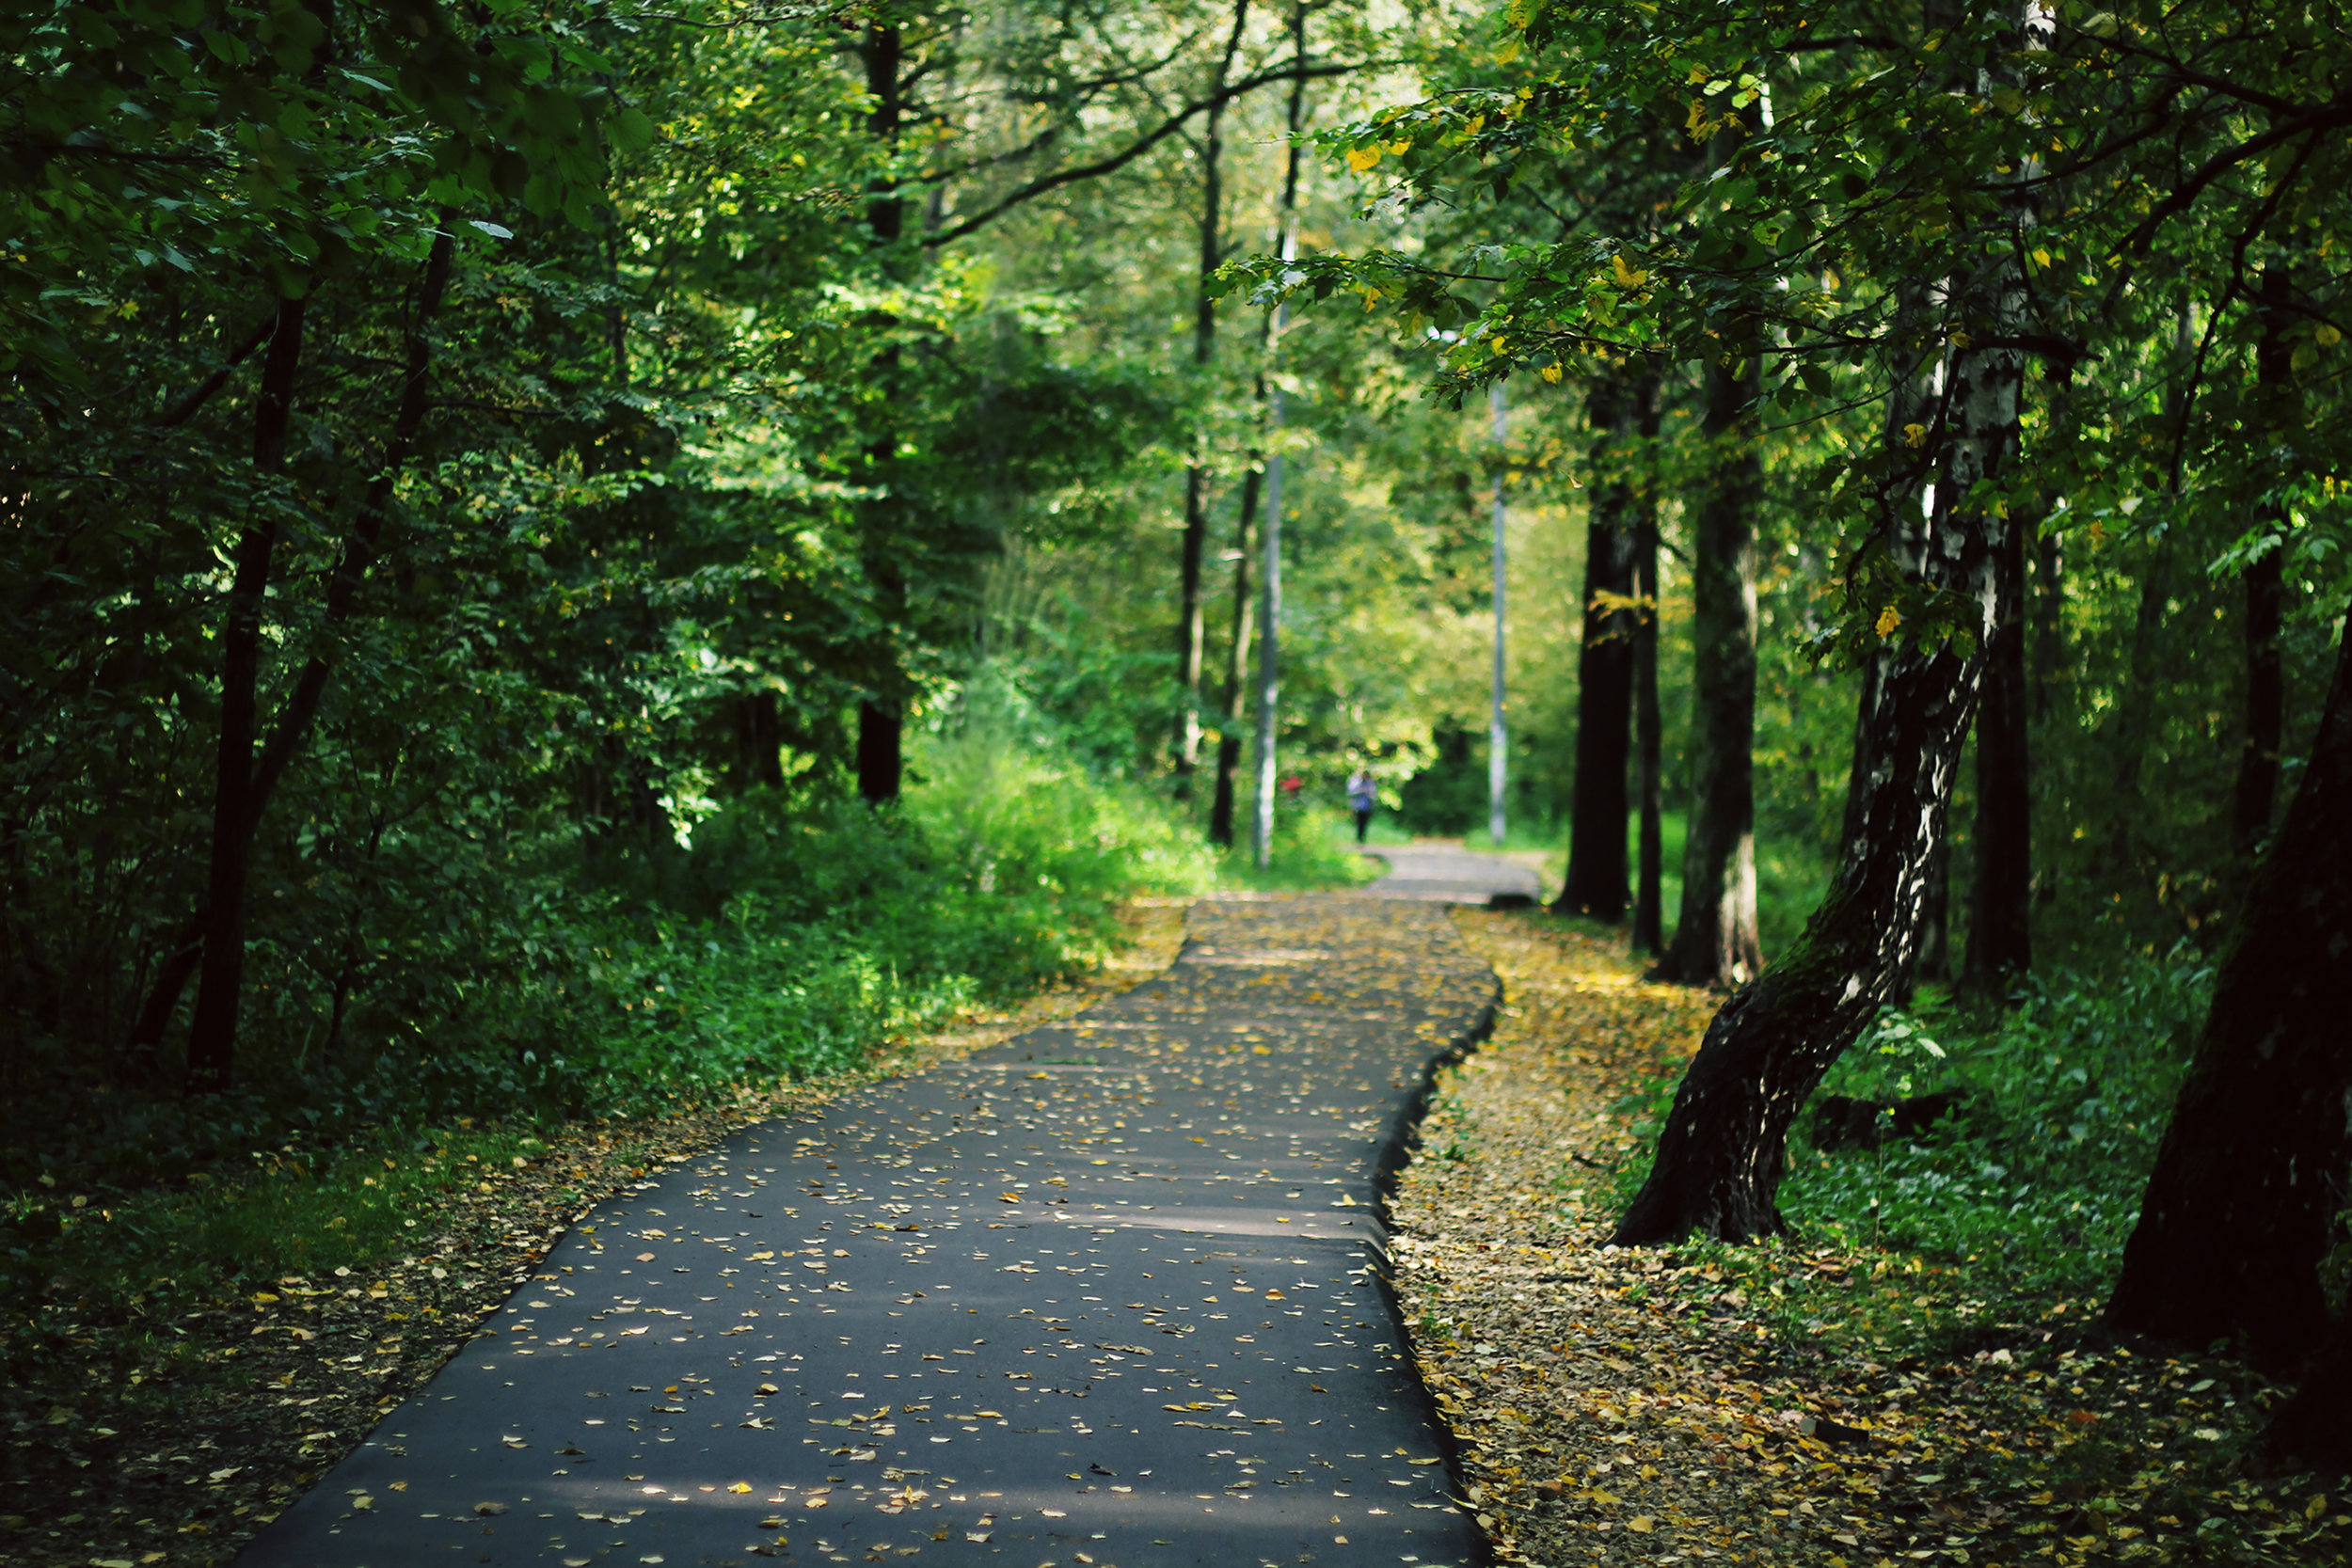 Coaching on the Go - Individual coaching sessions provided in an active outdoor setting: a walk in a local park, river valley trail, or even the botanical gardens!